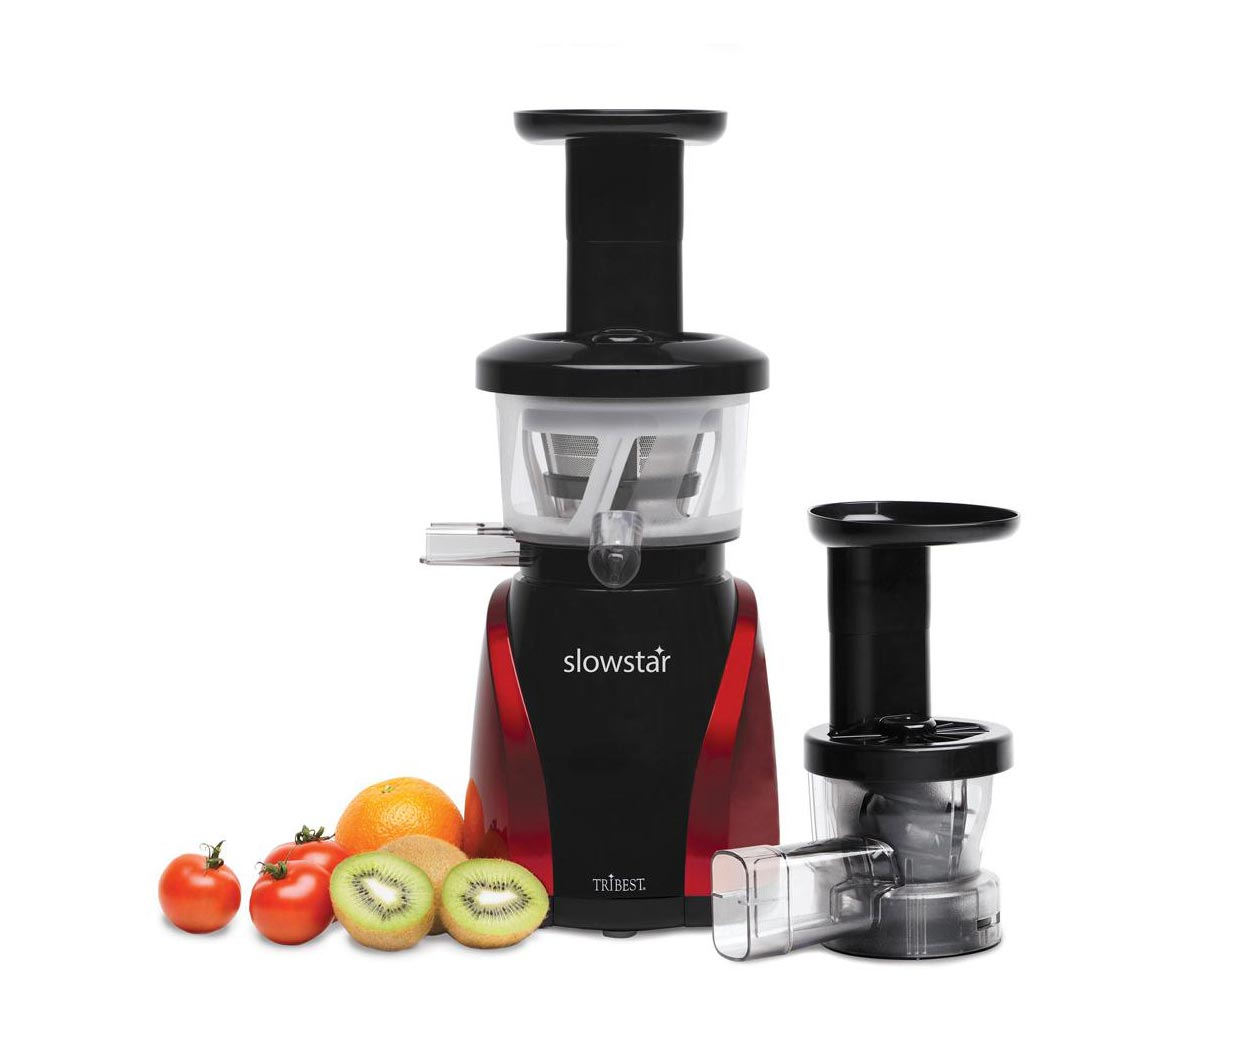 Rotel Slow Juicer Test : Tribest Slowstar Juicer Review. Is this Tribest juicer the best juicer to buy?